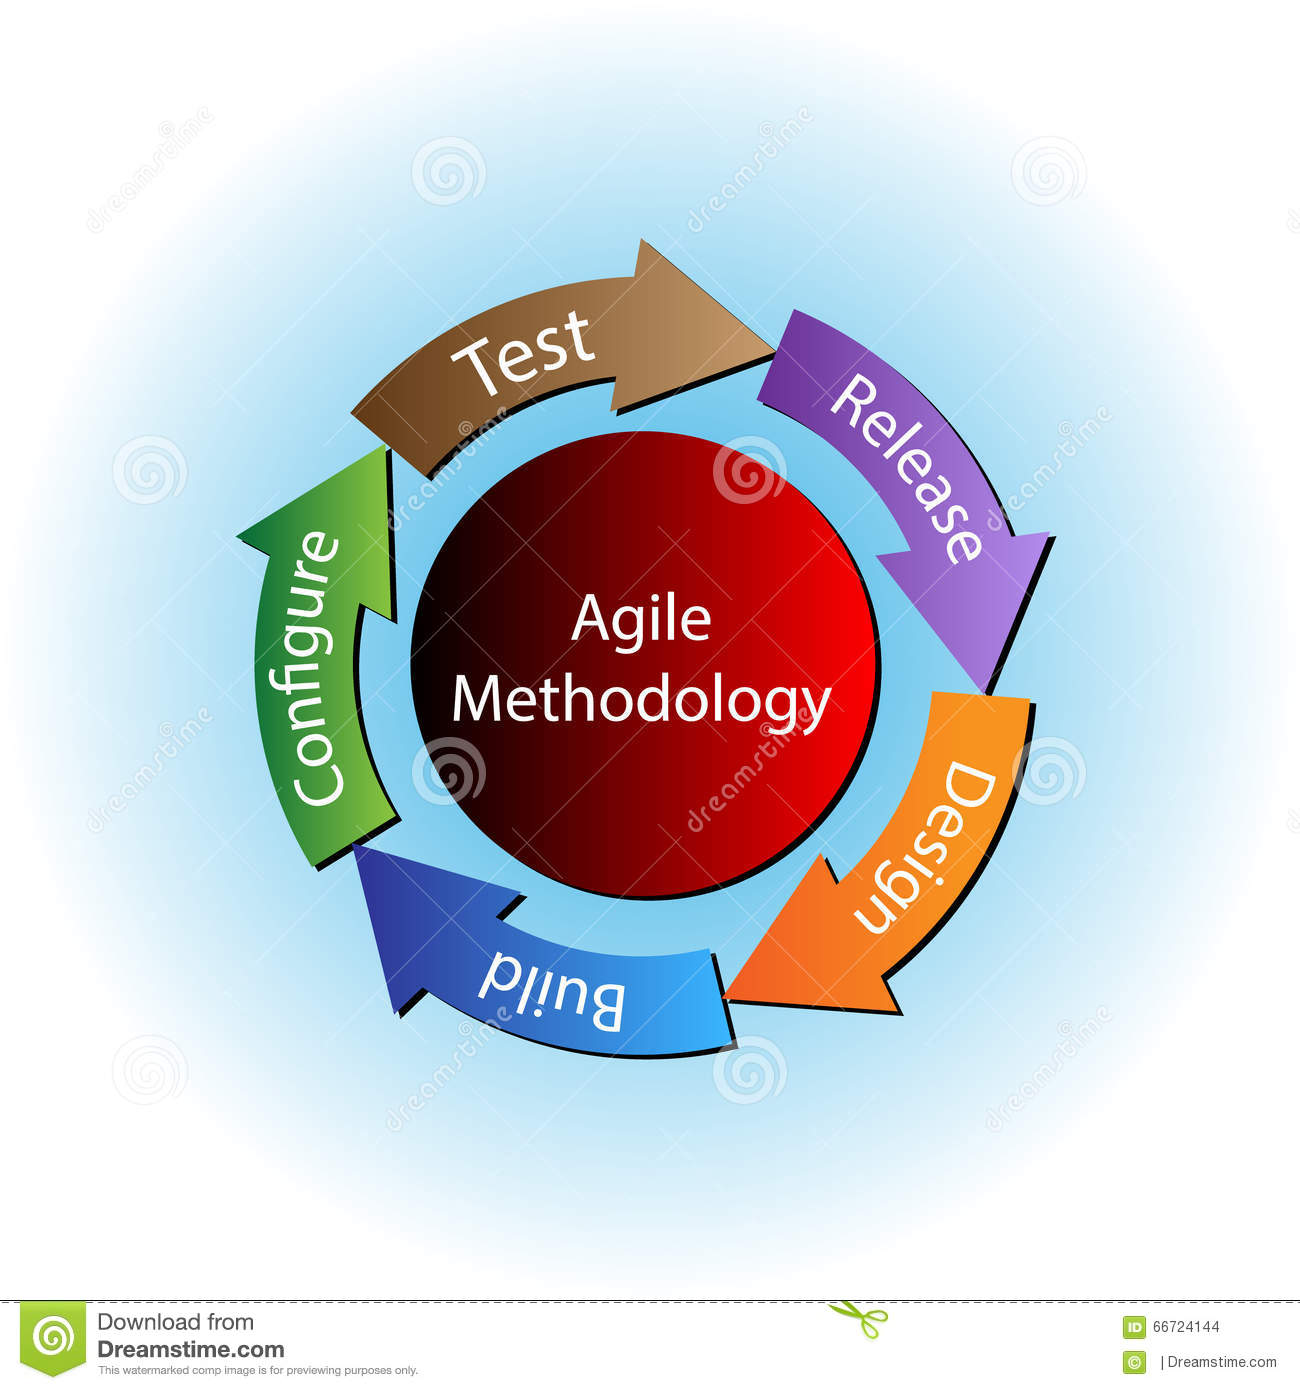 gile methodology Agile methodology is a people-focused, results-focused approach to software development that respects our rapidly changing world it's centered around adaptive planning, self-organization, and short delivery times it's flexible, fast, and aims for continuous improvements in quality, using tools.